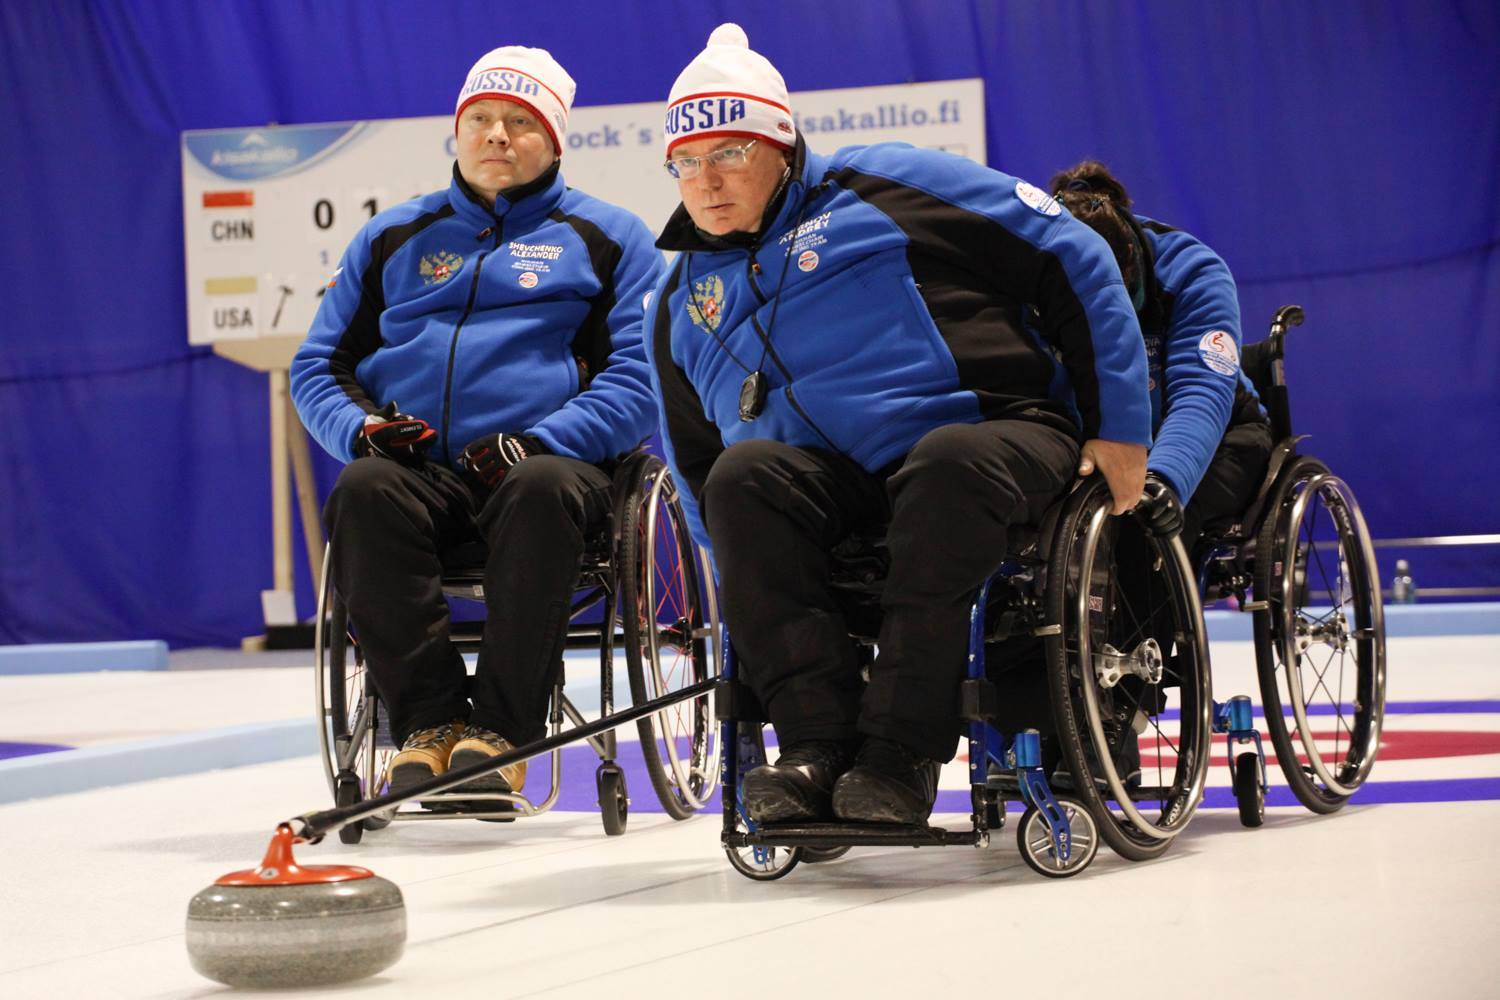 Russia remain the only undefeated team after five sessions of play at the World Wheelchair Curling Championship ©WCF/Alina Pavlyuchik